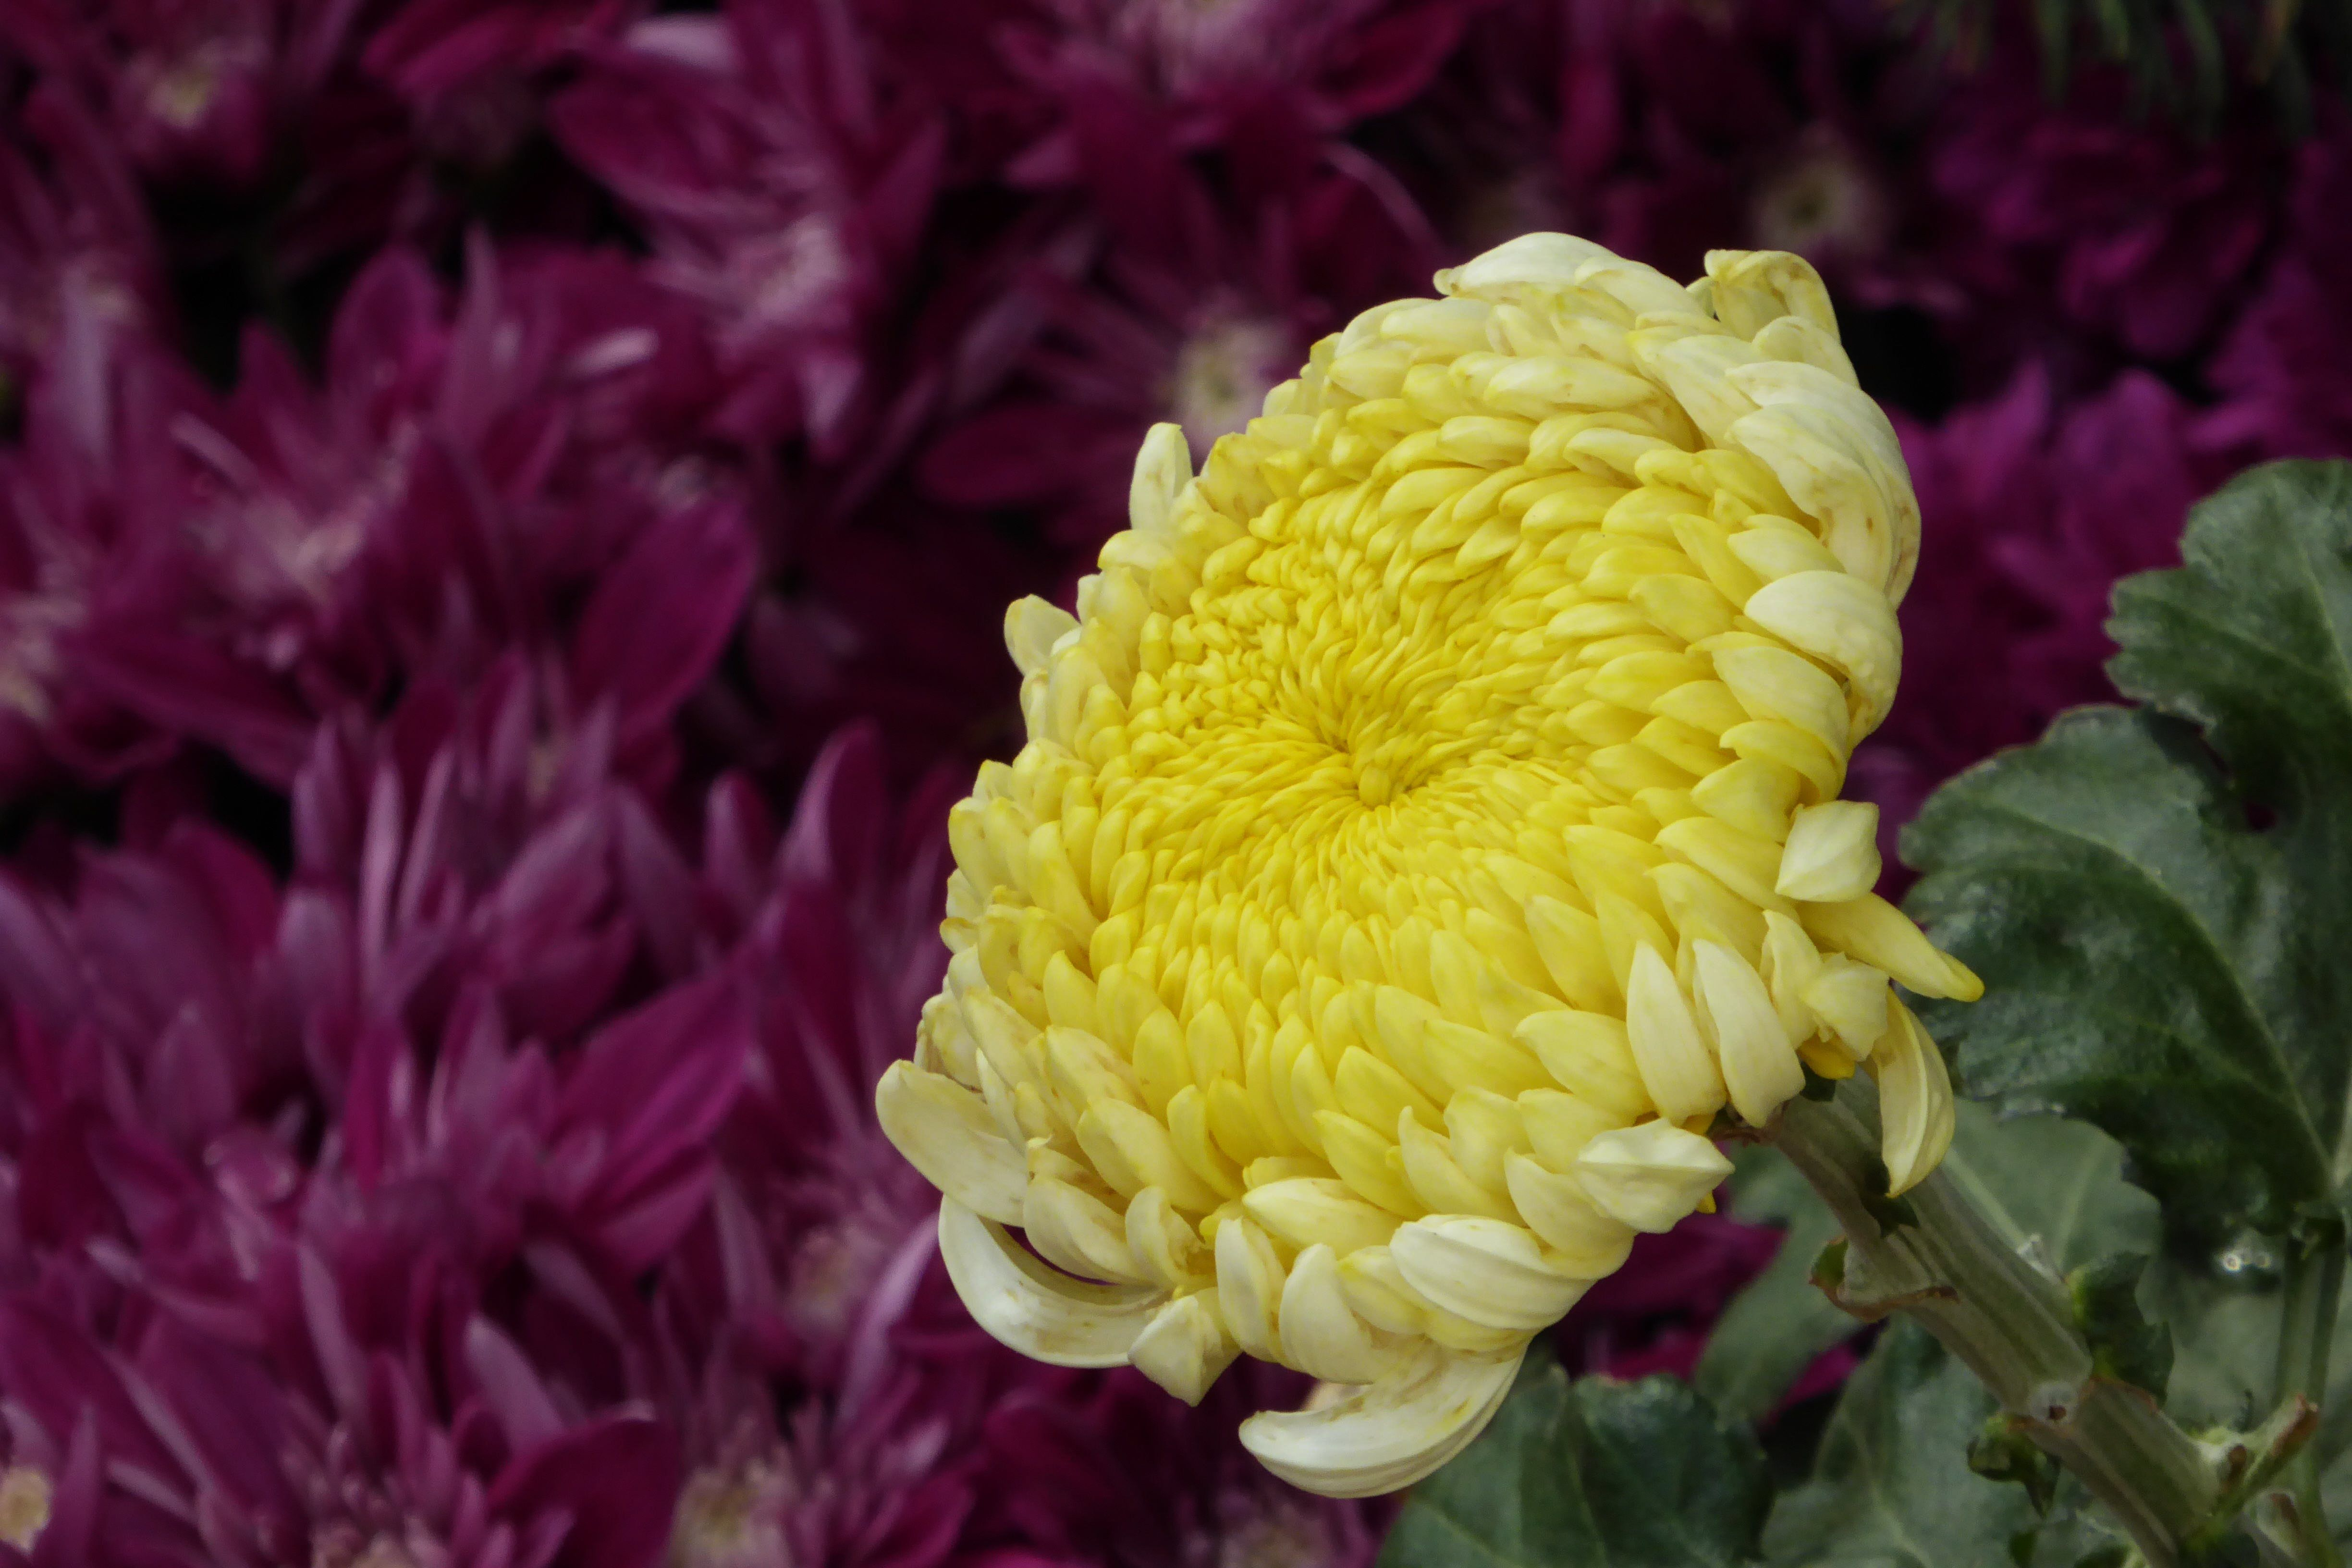 Yellow Or White Chrysanthemum Flowers Are Boiled To Make A Tea In Some Parts Of Asia The Resulting Beverag Chrysanthemum Tea Chrysanthemum Leaves Wine Flavors